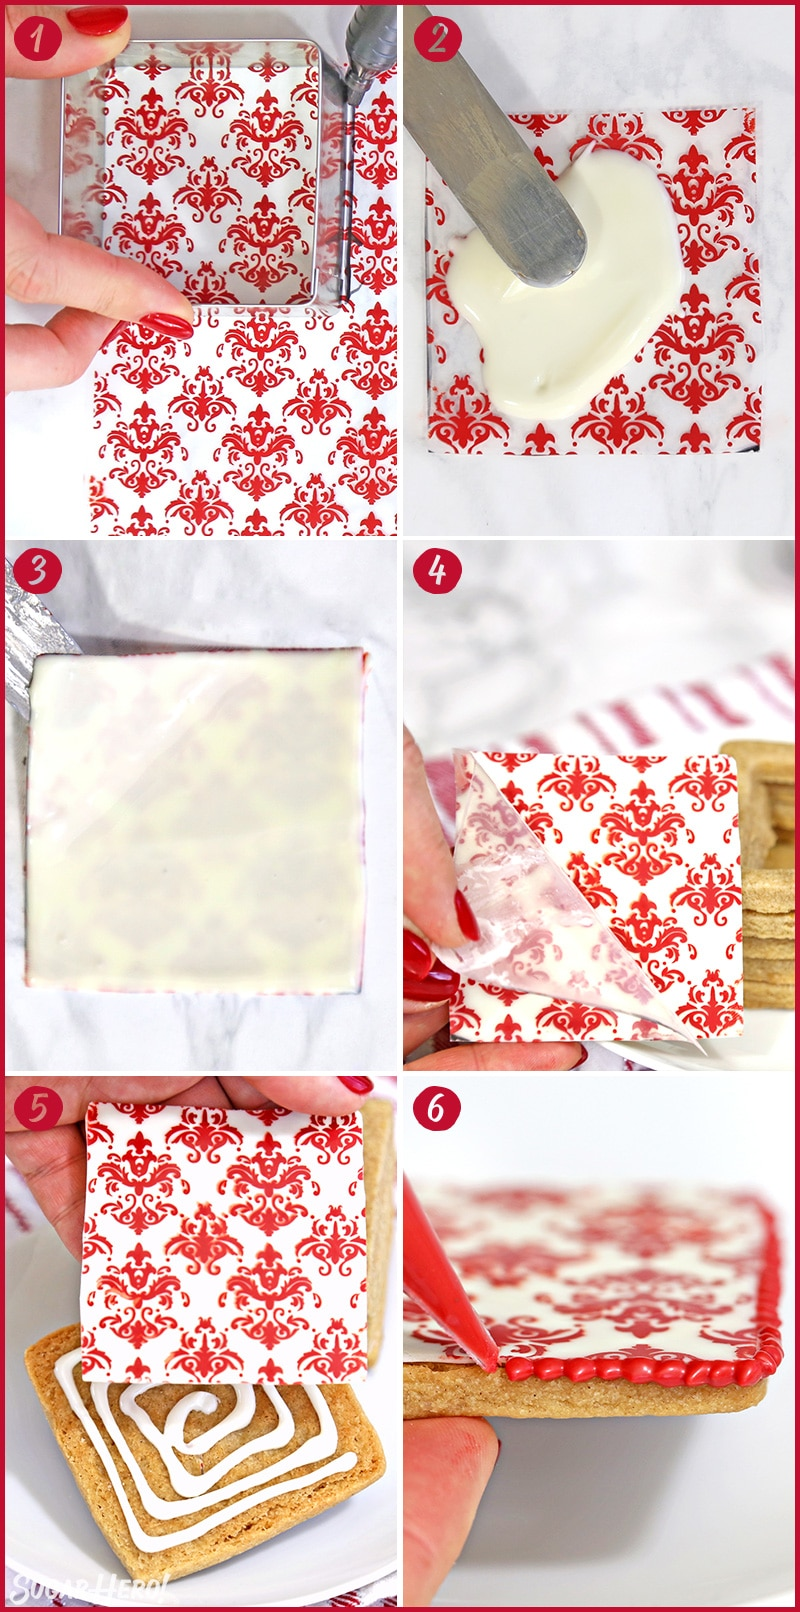 Six photo collage showing how to assemble and decorate Edible Christmas Cookie Boxes